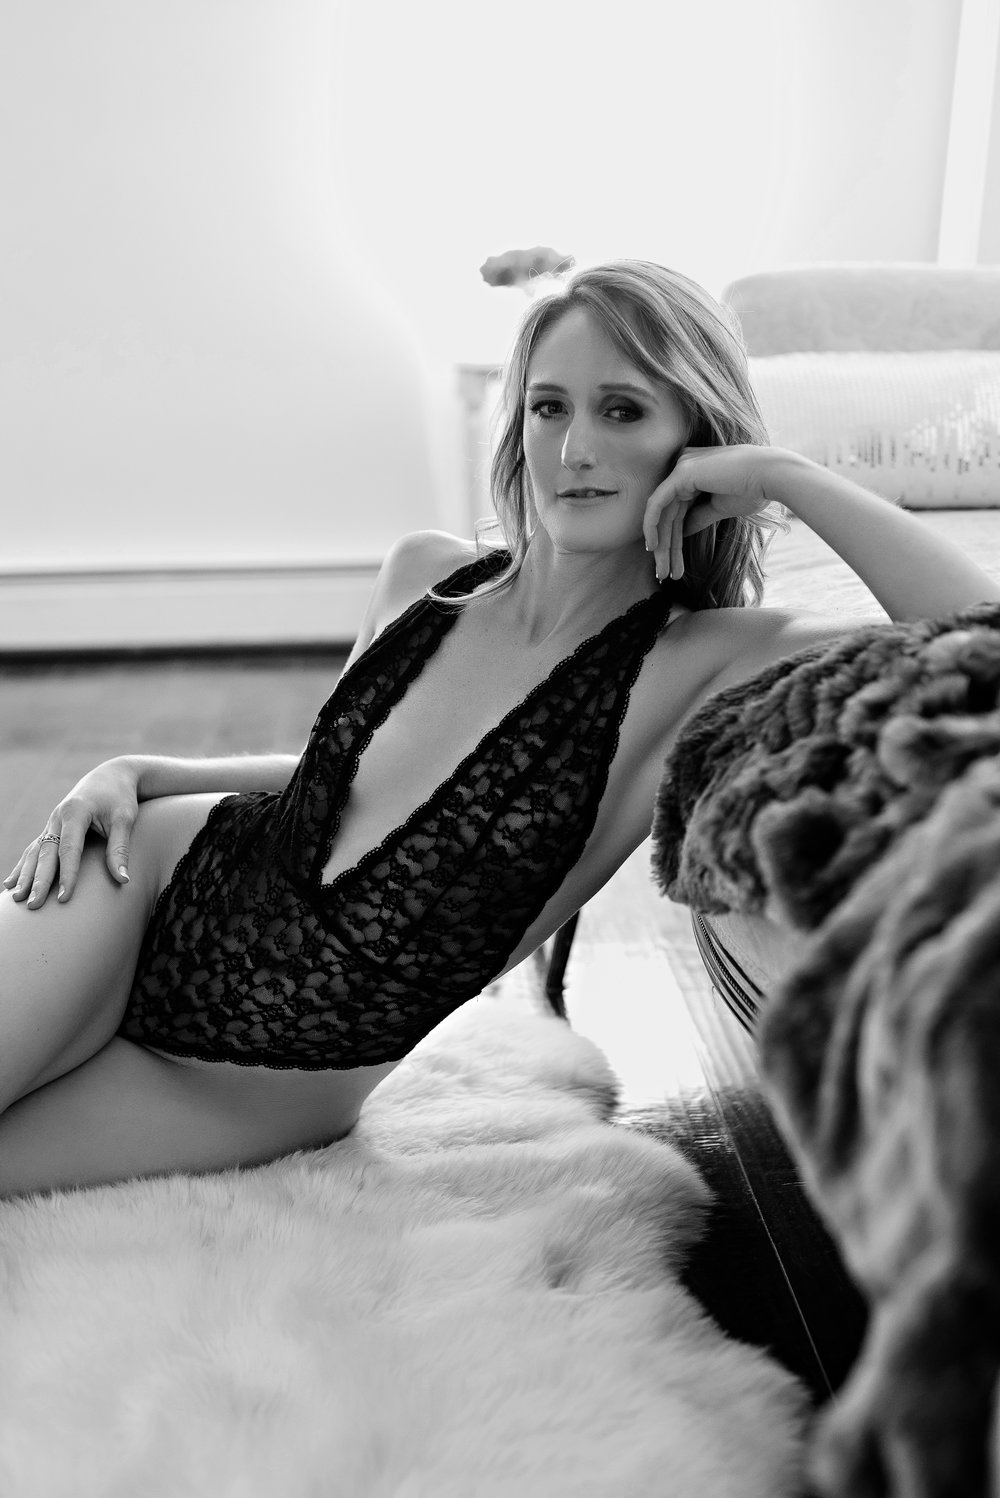 Woman wearing black lace bodysuit in black and white boudoir photo